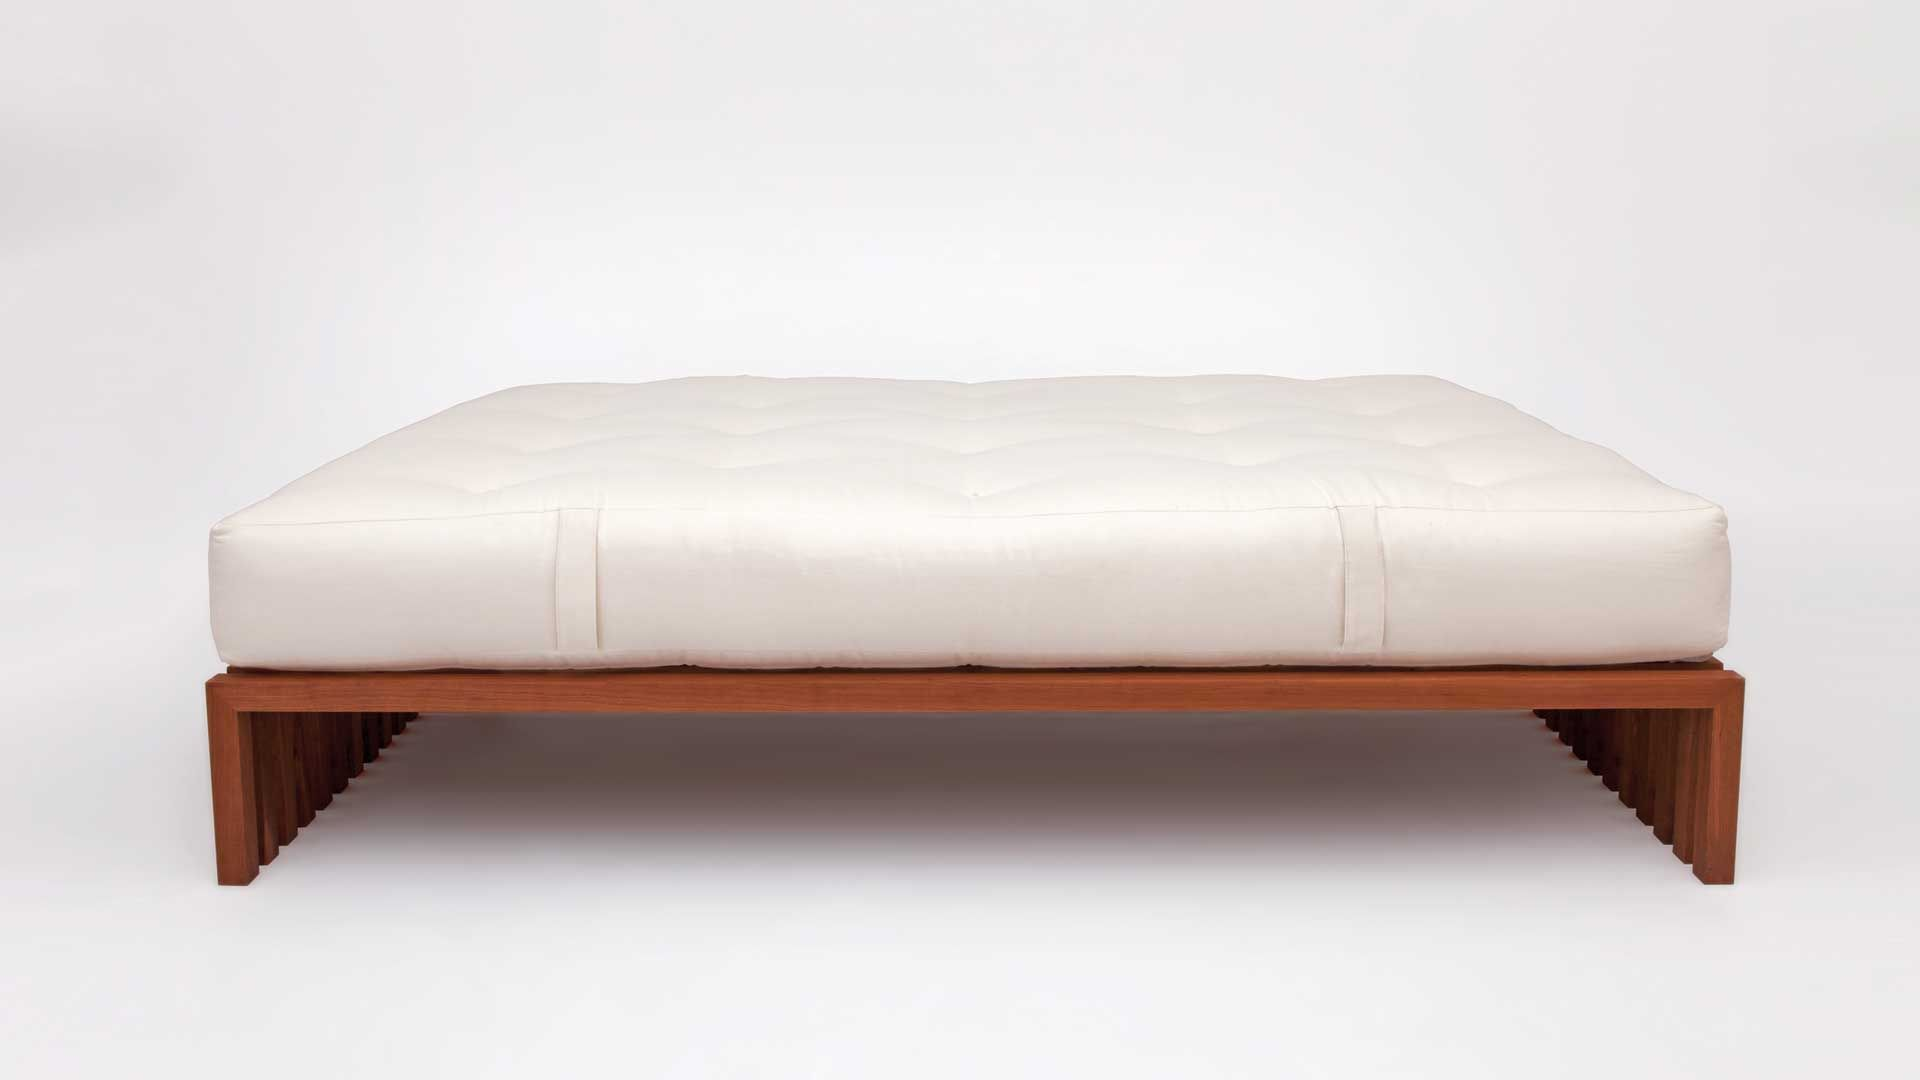 Full Size of Futon Bett Bettgestell 90x200 Better Homes And Gardens Review Instructions 180x200 Are Japanese Futons For Your Back Selber Bauen Replacement Parts Berlin Bett Futon Bett